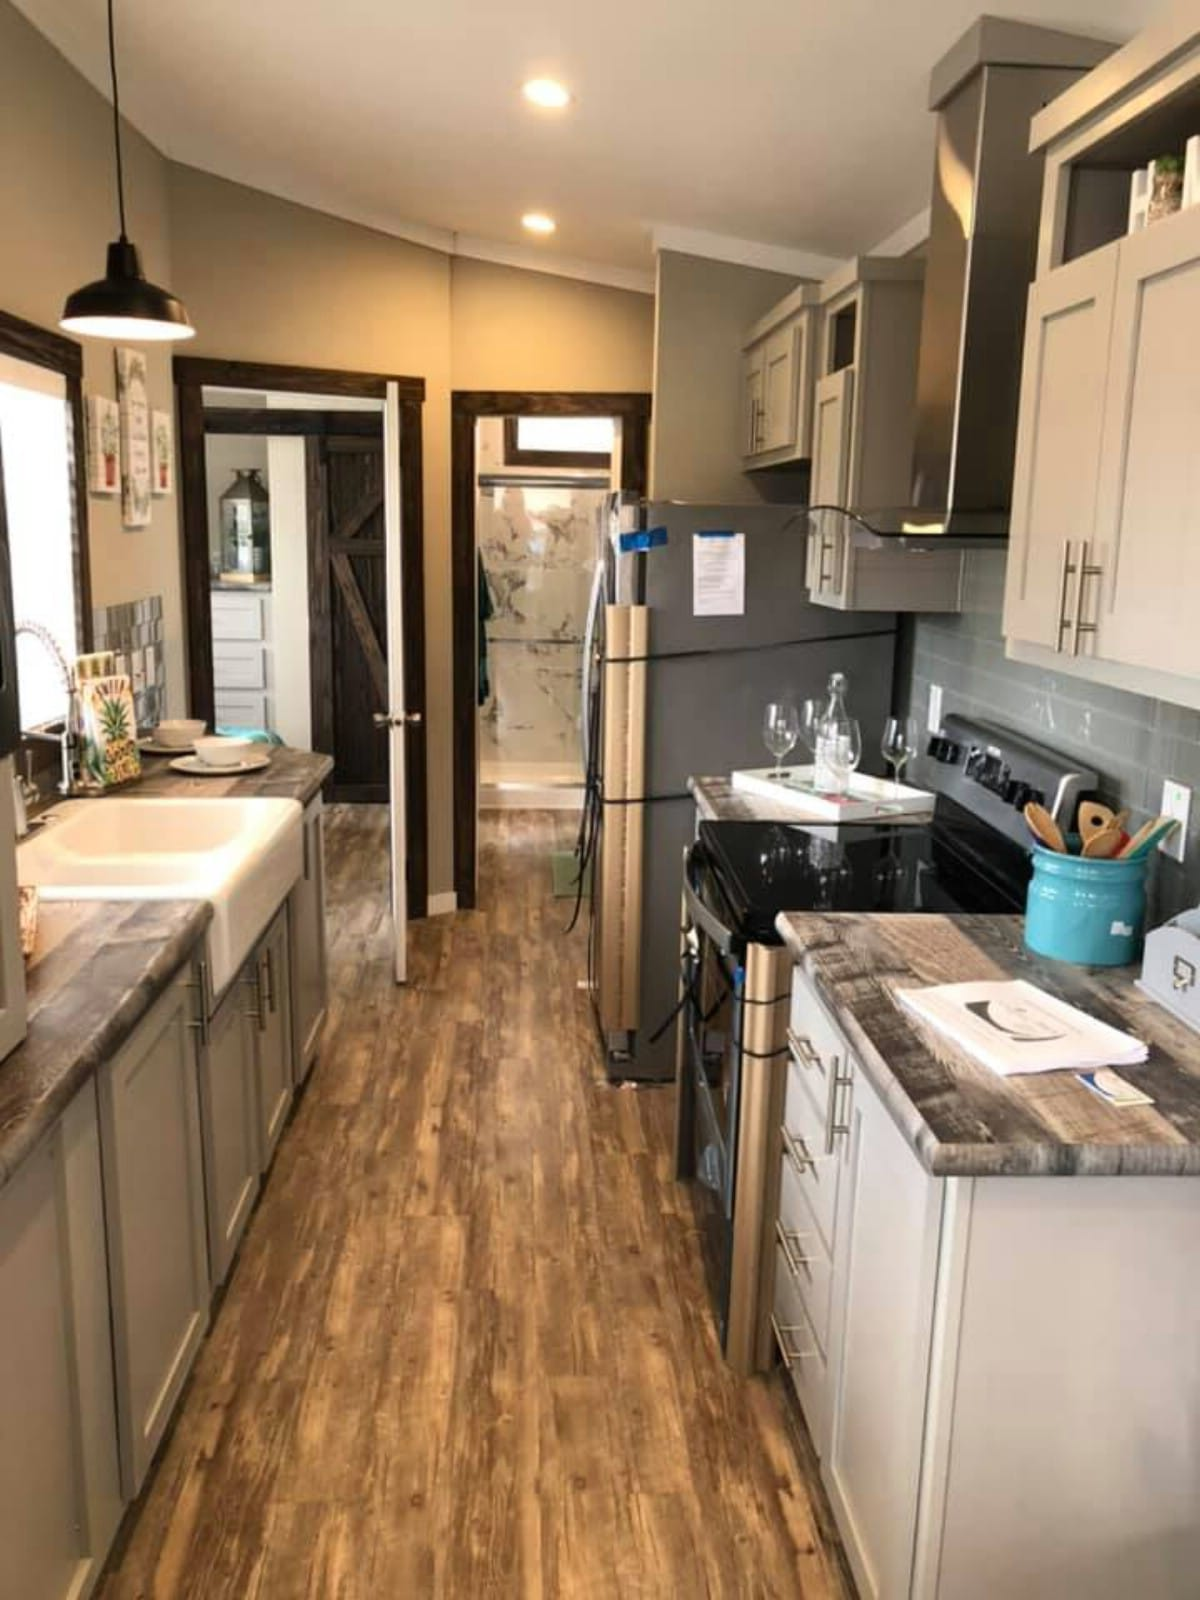 This Tiny House for Sale in TX Includes the Amazing Deck and All Appliances